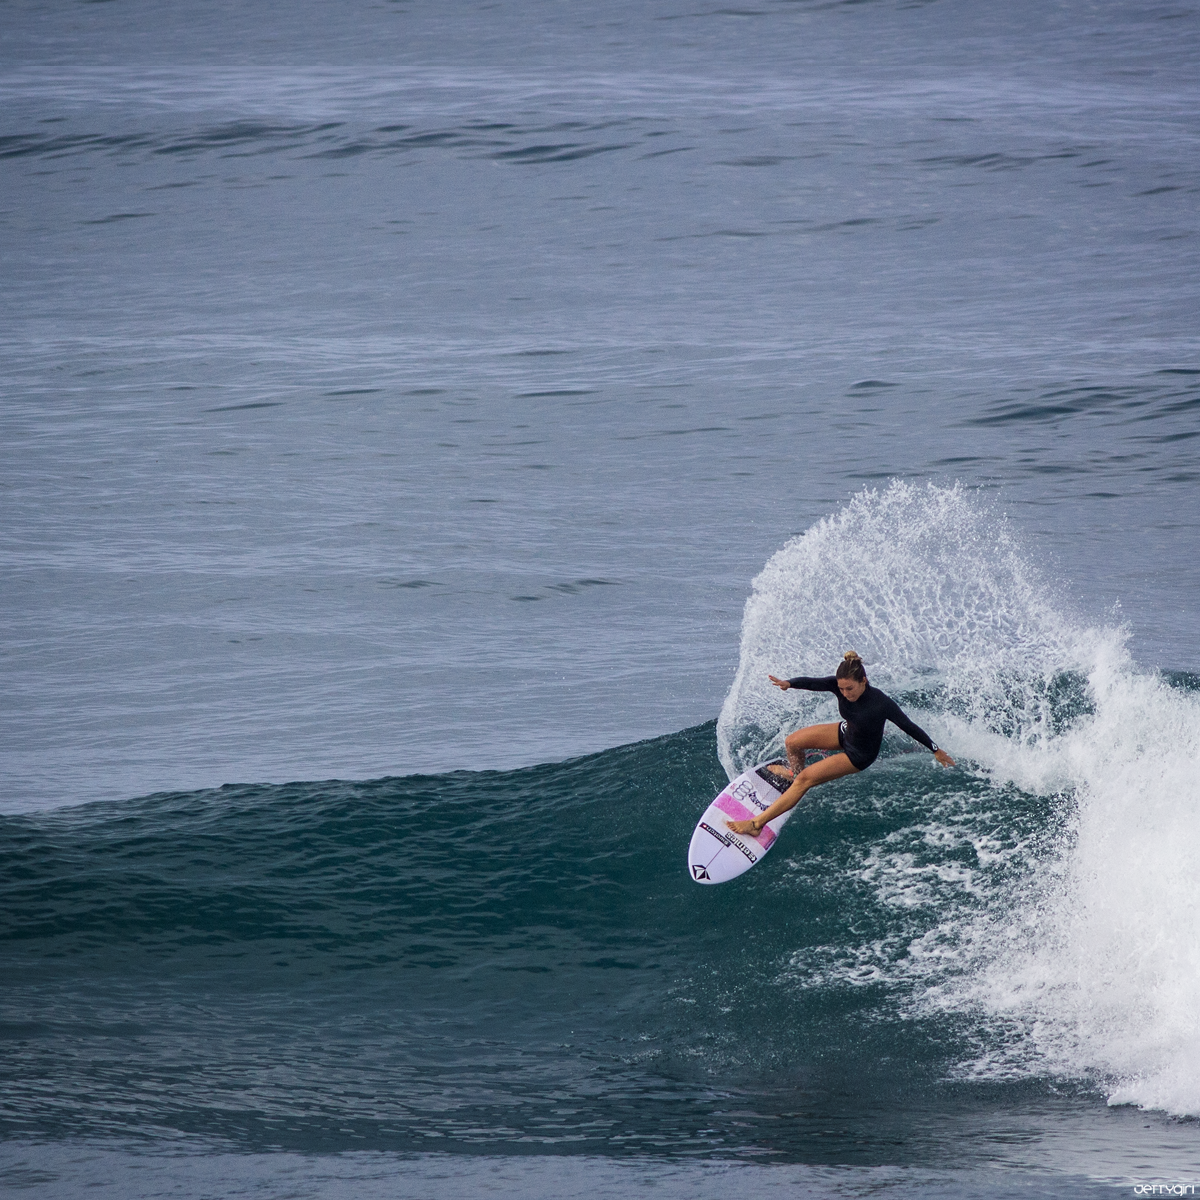 Coco Ho wrapping a clean frontside turn. Chris Grant photo for JettyGirl Surf Mag. @chrisgrantphoto @jettygirlsurfmag